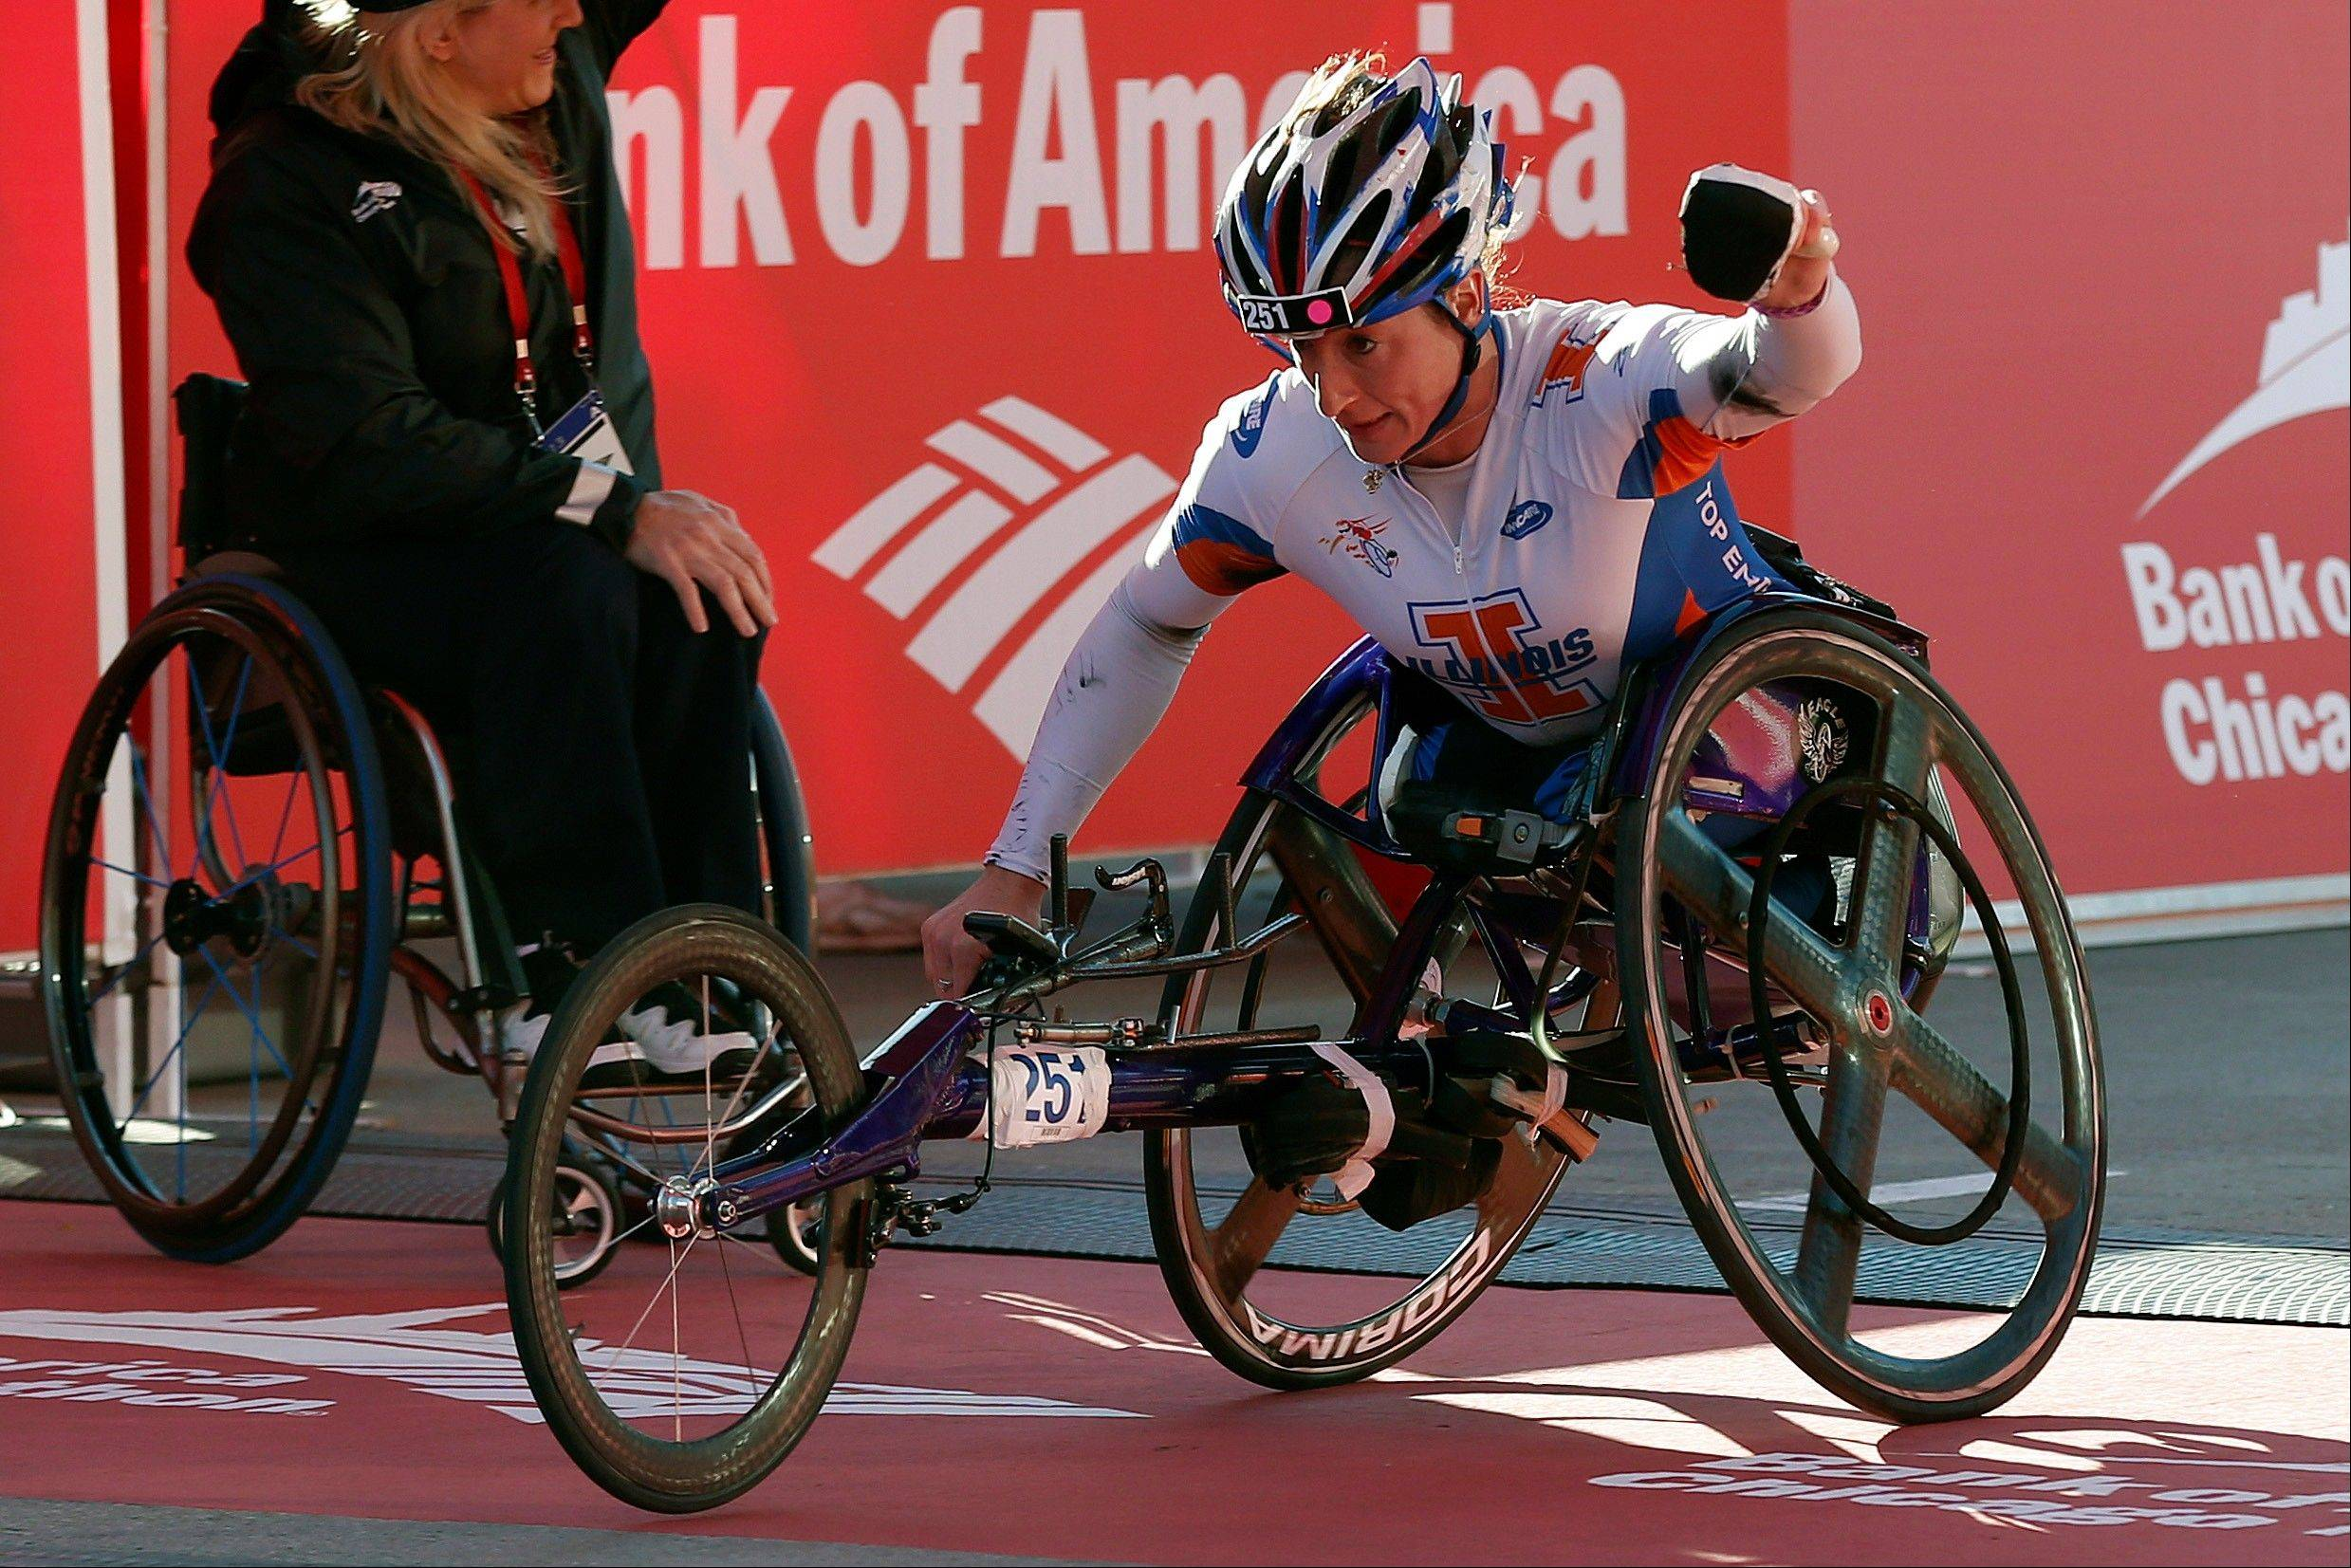 Champaign's Tatyana McFadden wins the woman's wheelchair division of the Chicago Marathon on Sunday.